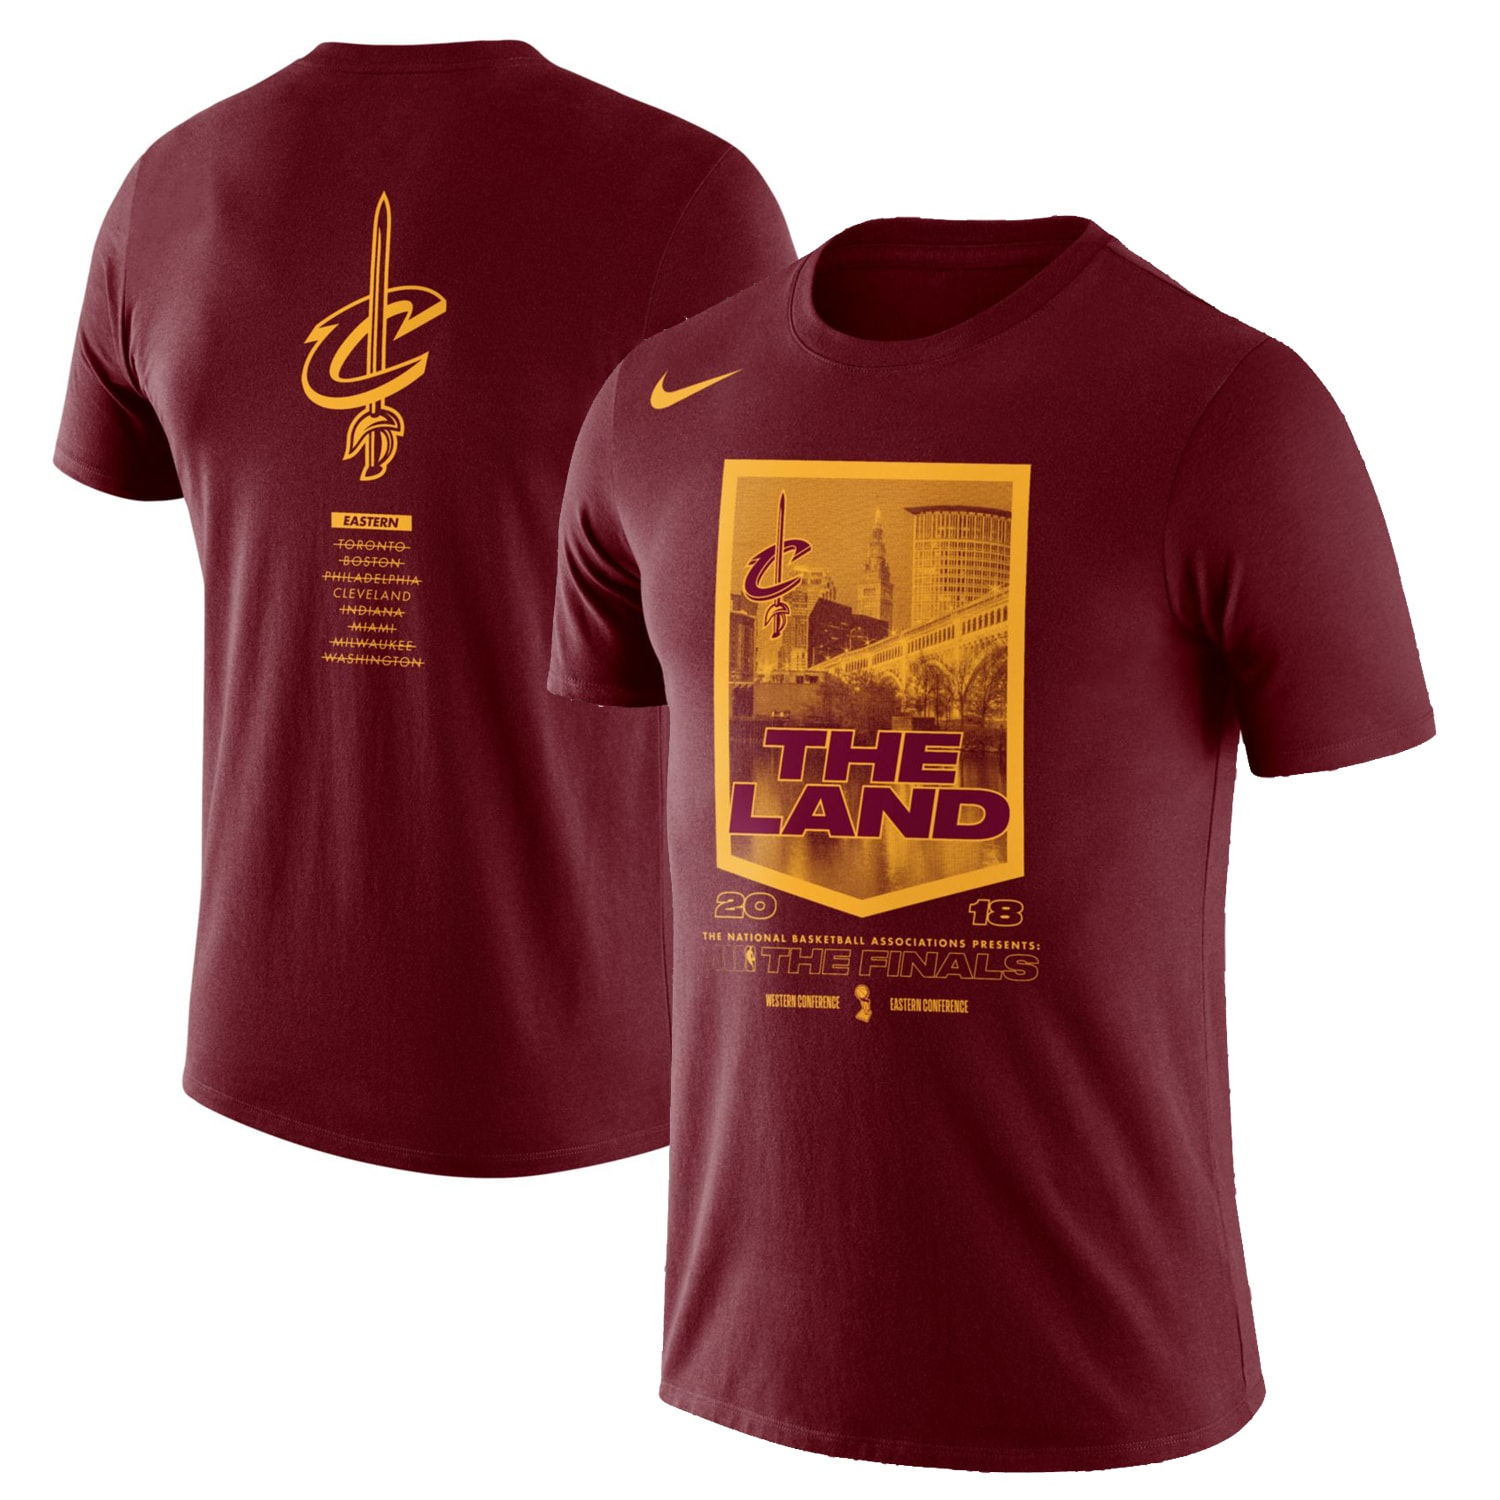 Cleveland Cavaliers Nike 2018 NBA Finals Bound City DNA Cotton Performance T-Shirt - Red